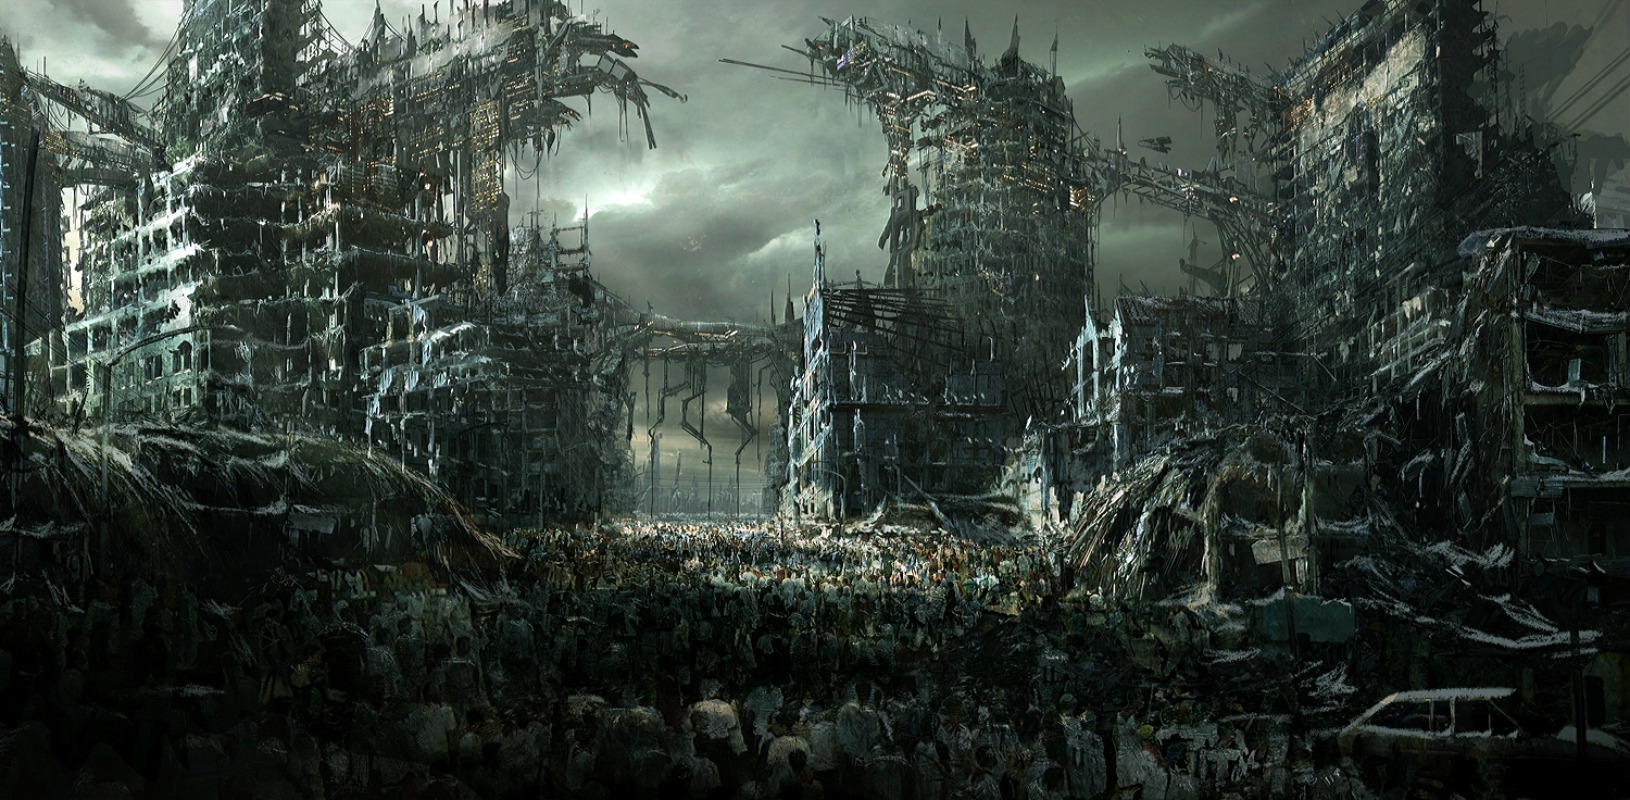 Zombie Wallpaper and Background Image 1630x800 ID195143 1630x800